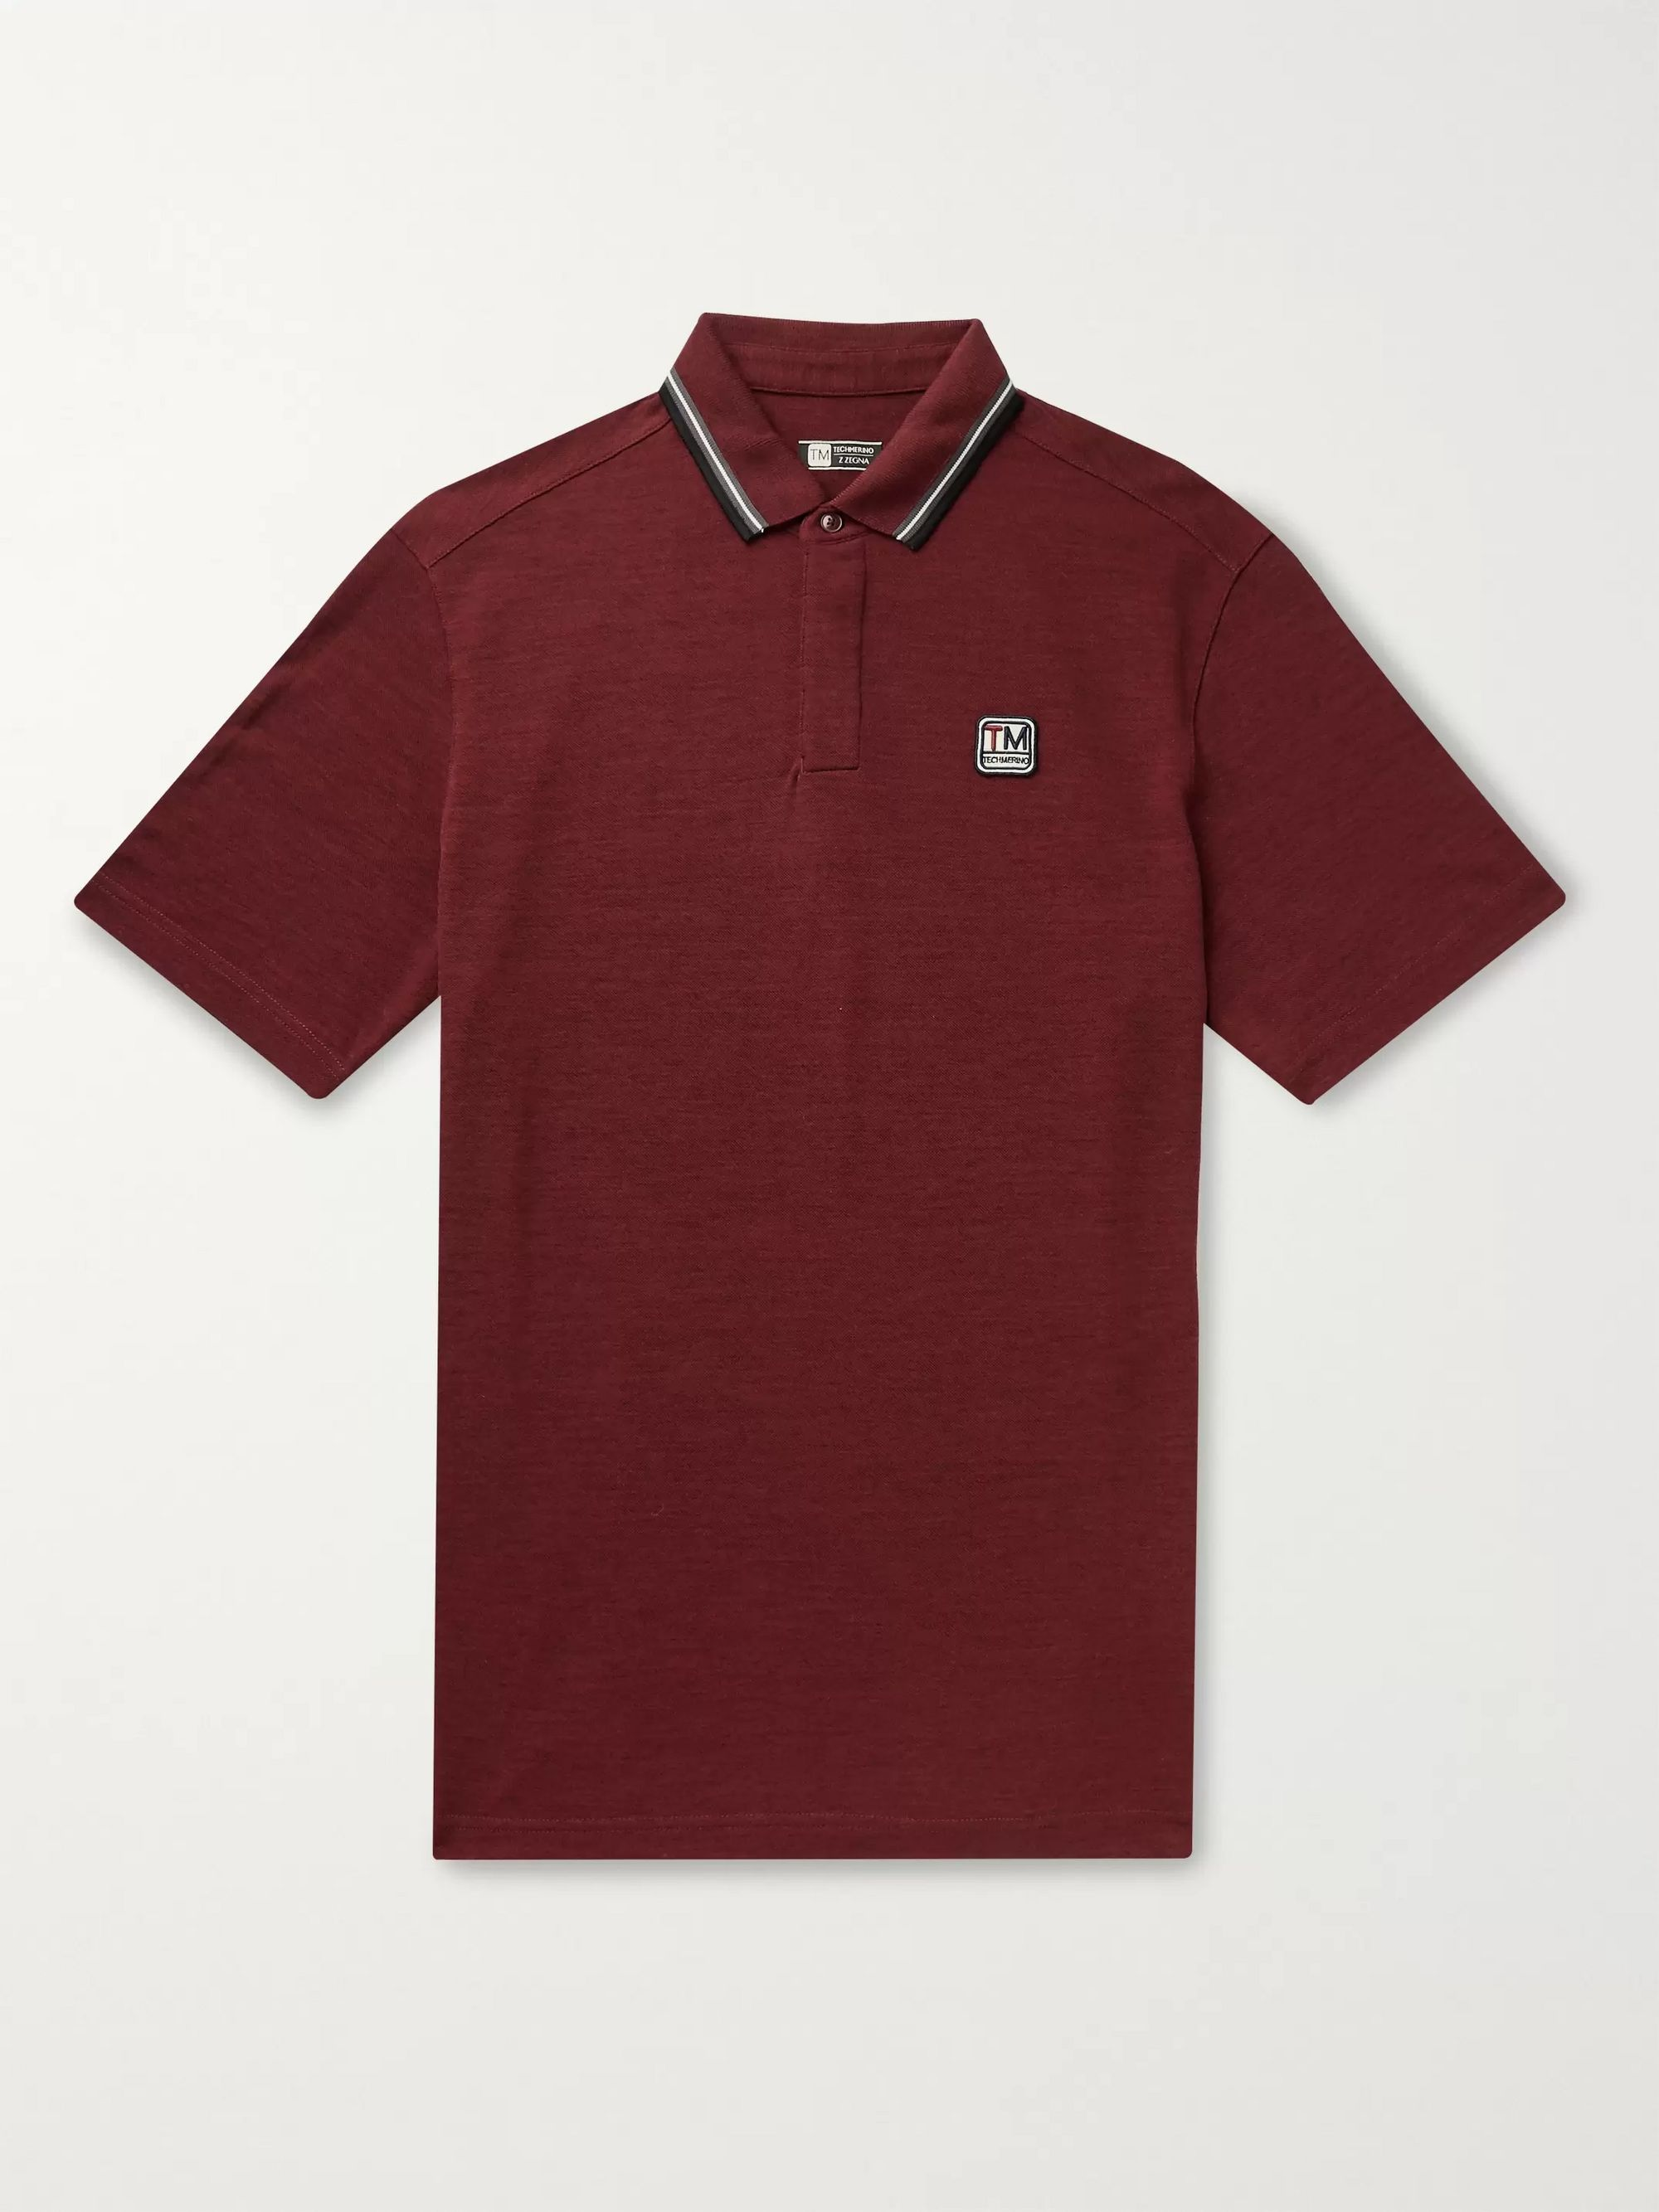 Z Zegna Contrast-Tipped Logo-Appliquéd TECHMERINO Wool Polo Shirt